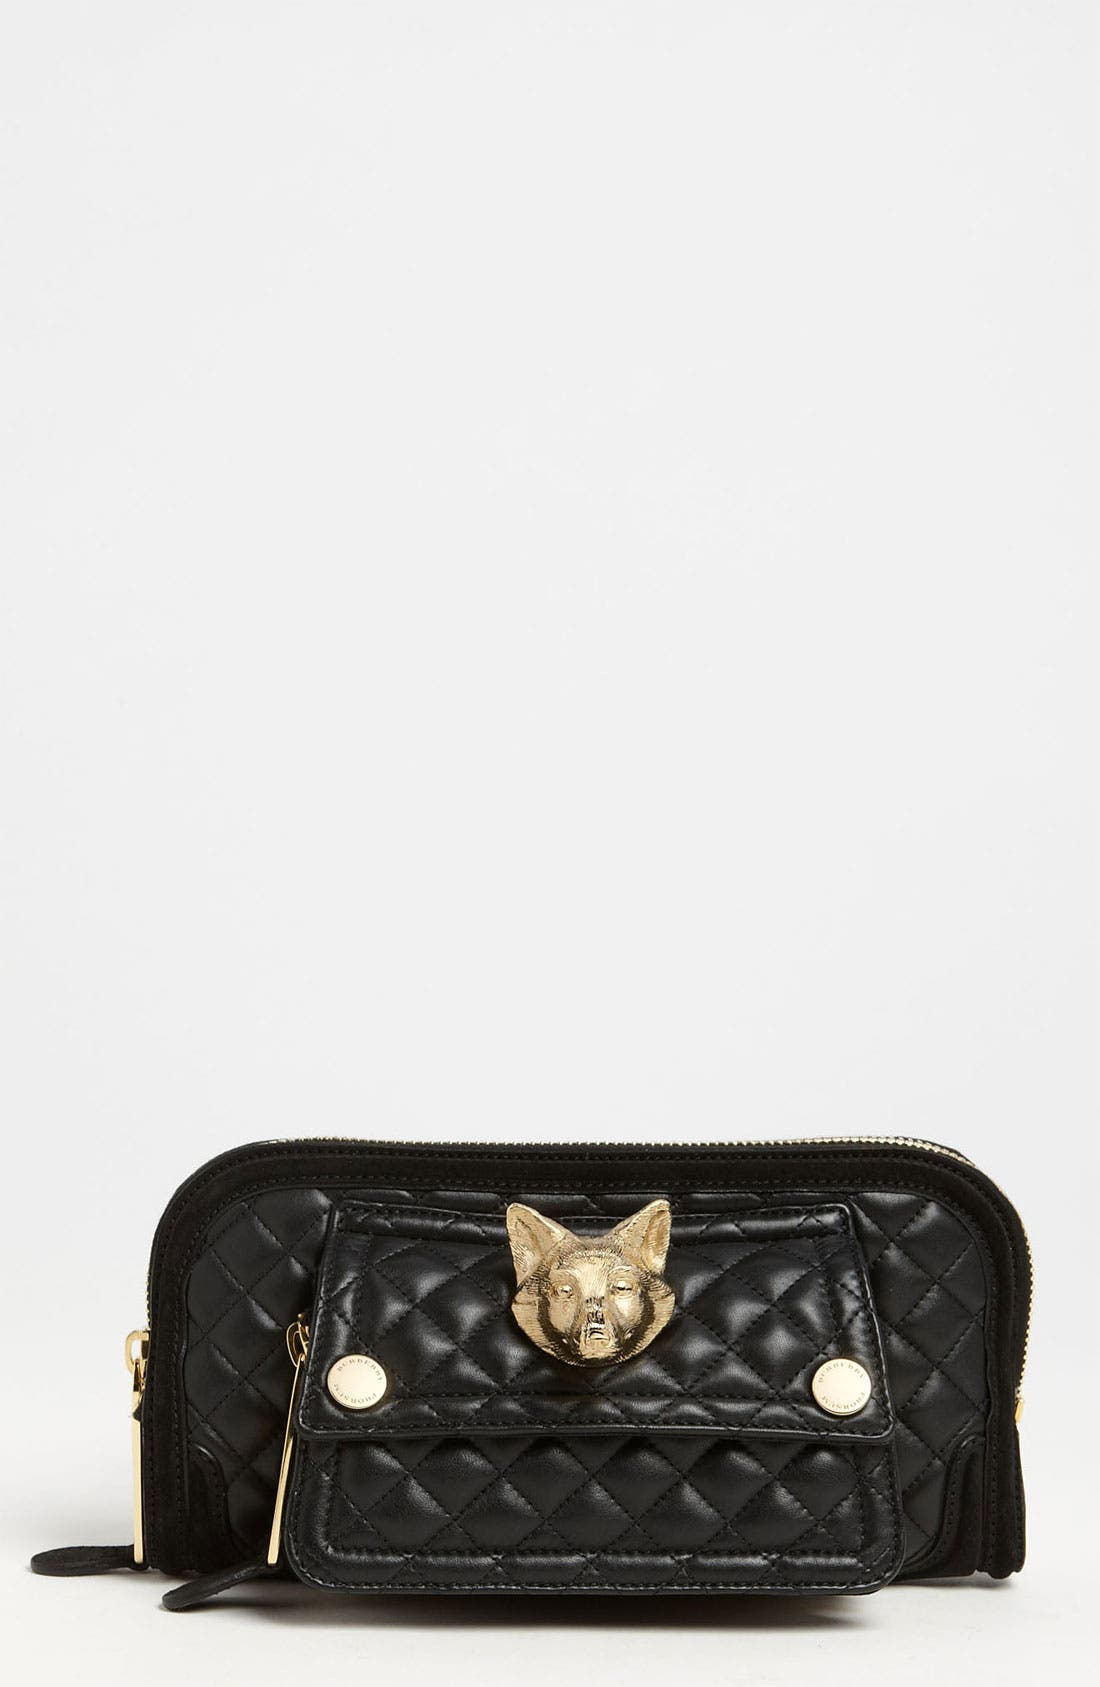 Main Image - Burberry Prorsum Quilted Leather Clutch